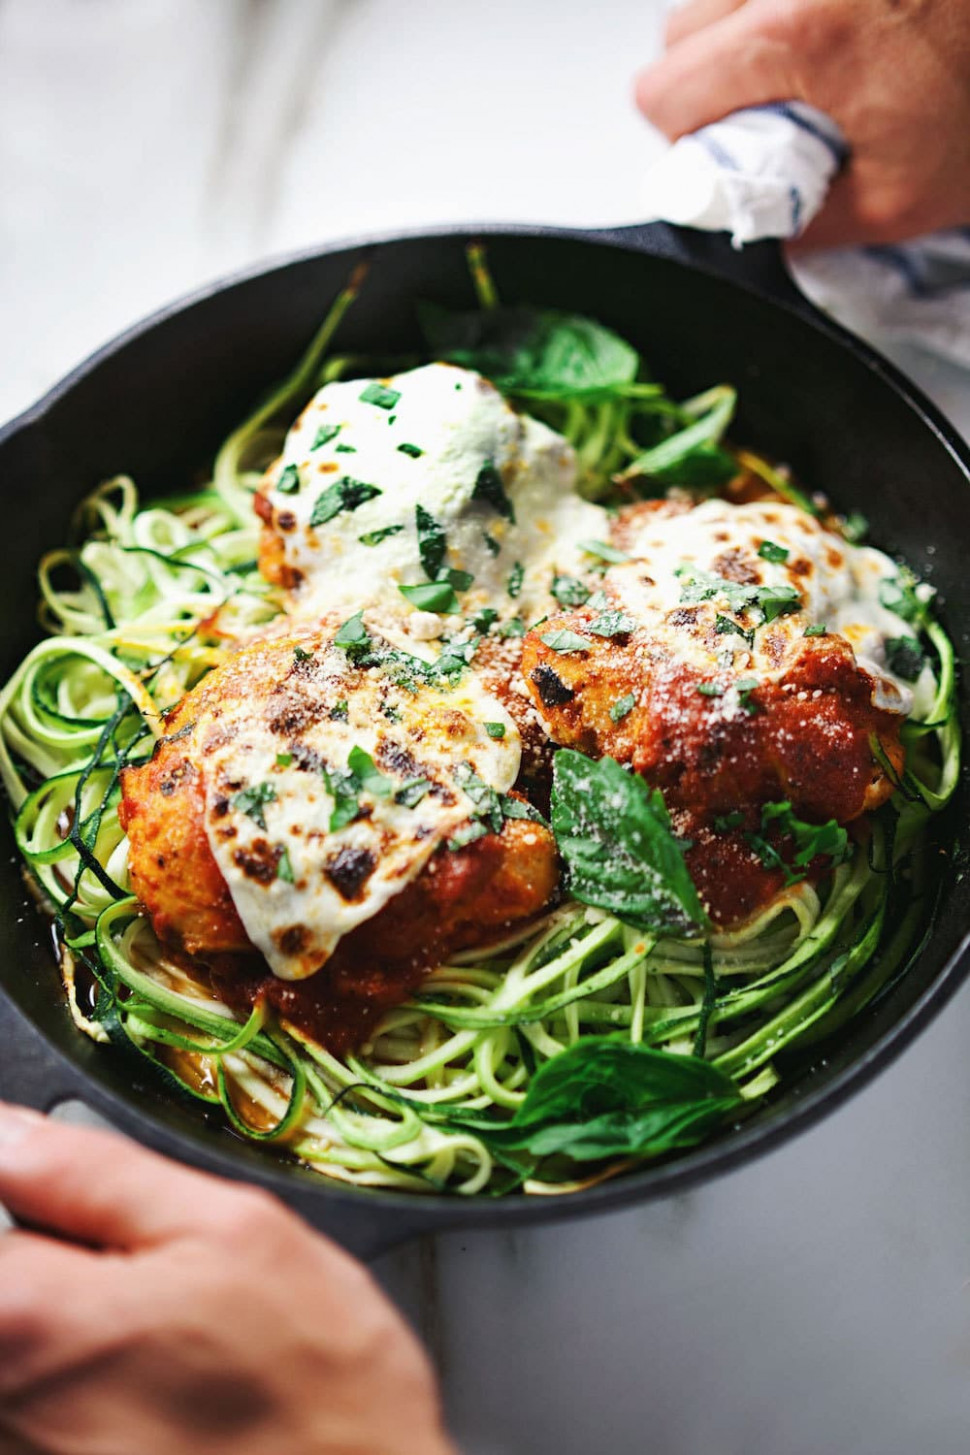 Baked Parmesan Chicken With Zucchini Noodles - Zucchini Noodles And Chicken Recipes